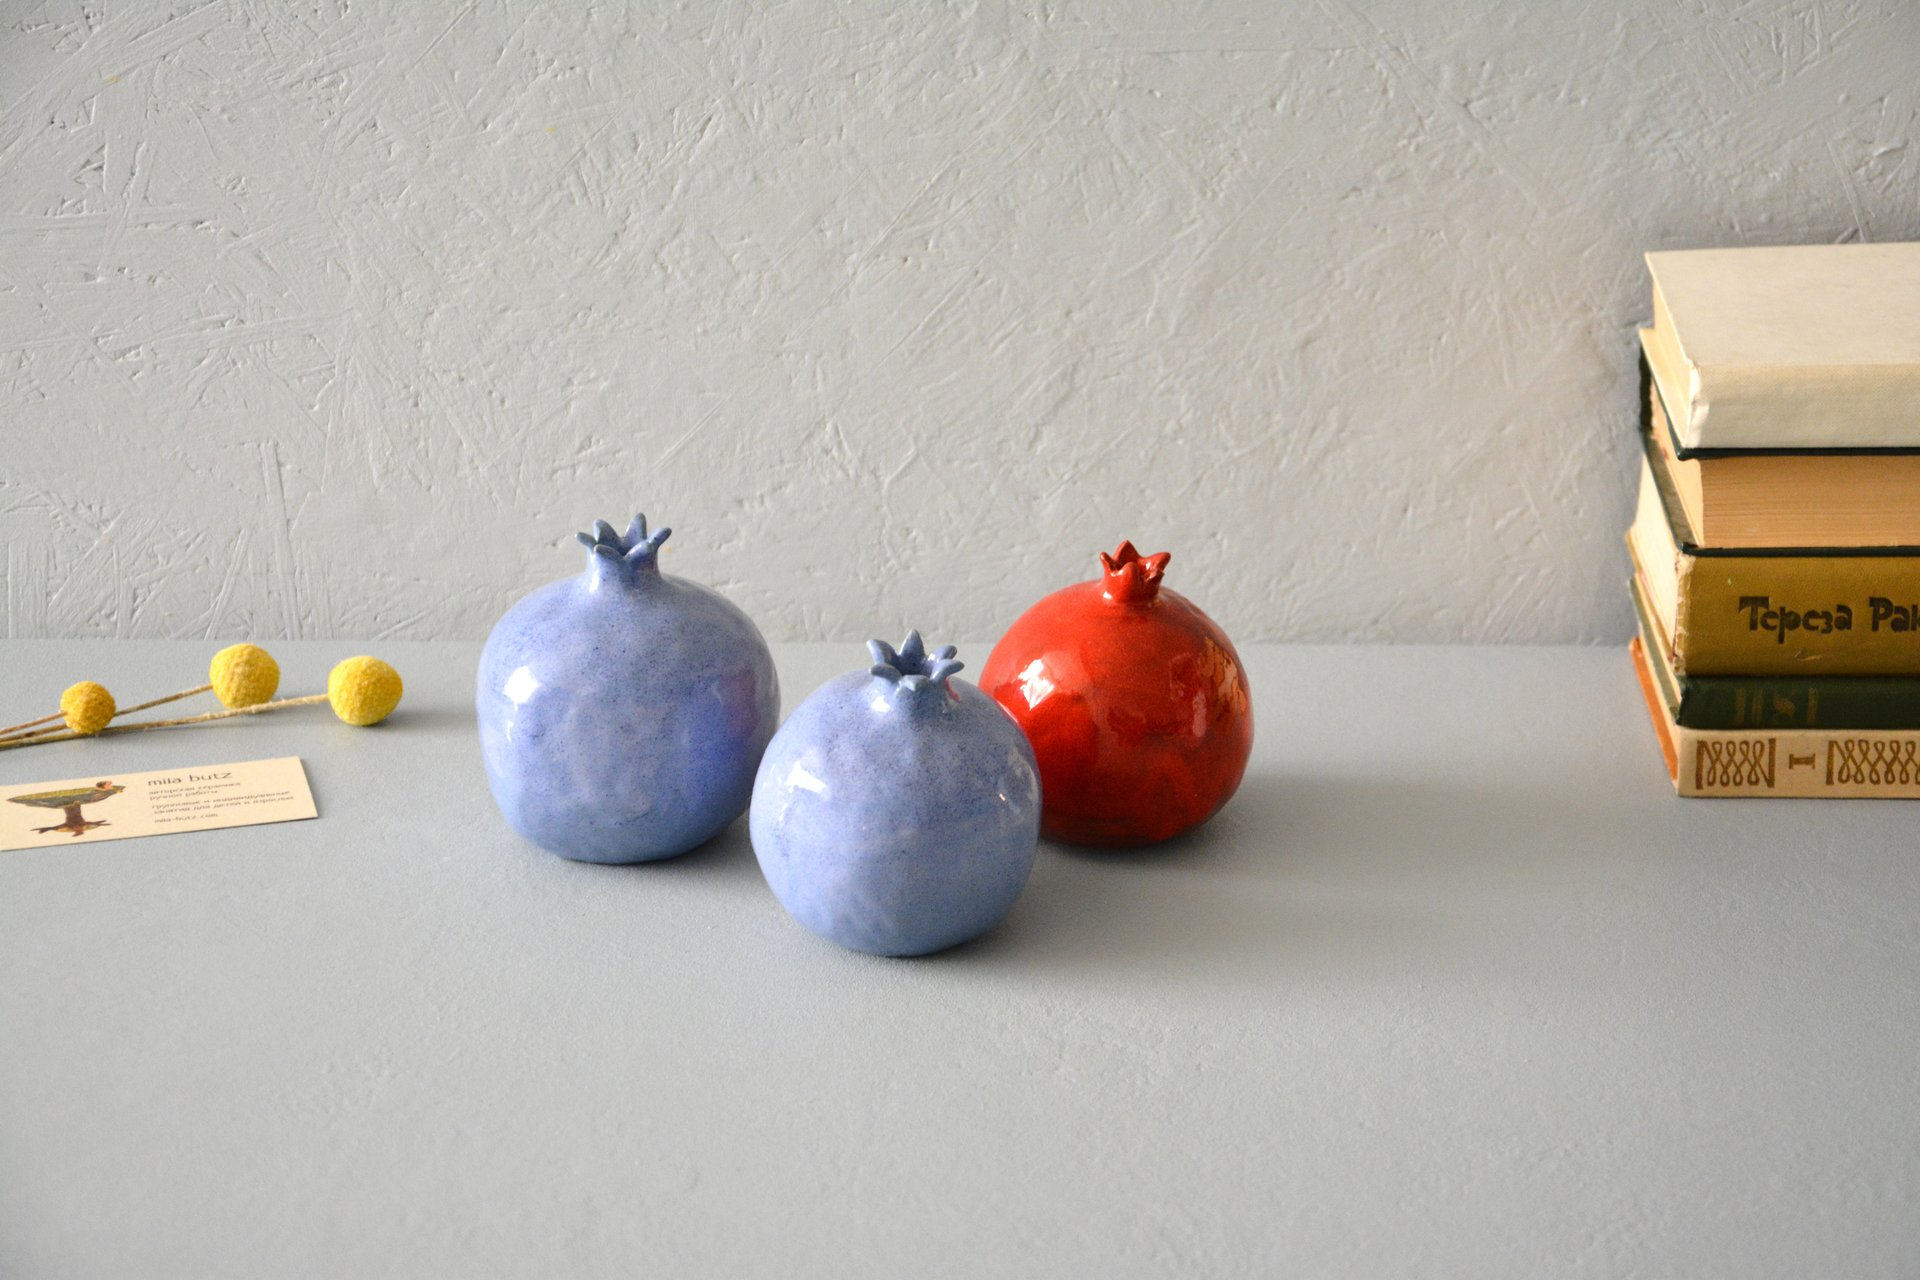 Two blue ceramic pomegranates, height - 10 cm, photo 4 of 5.